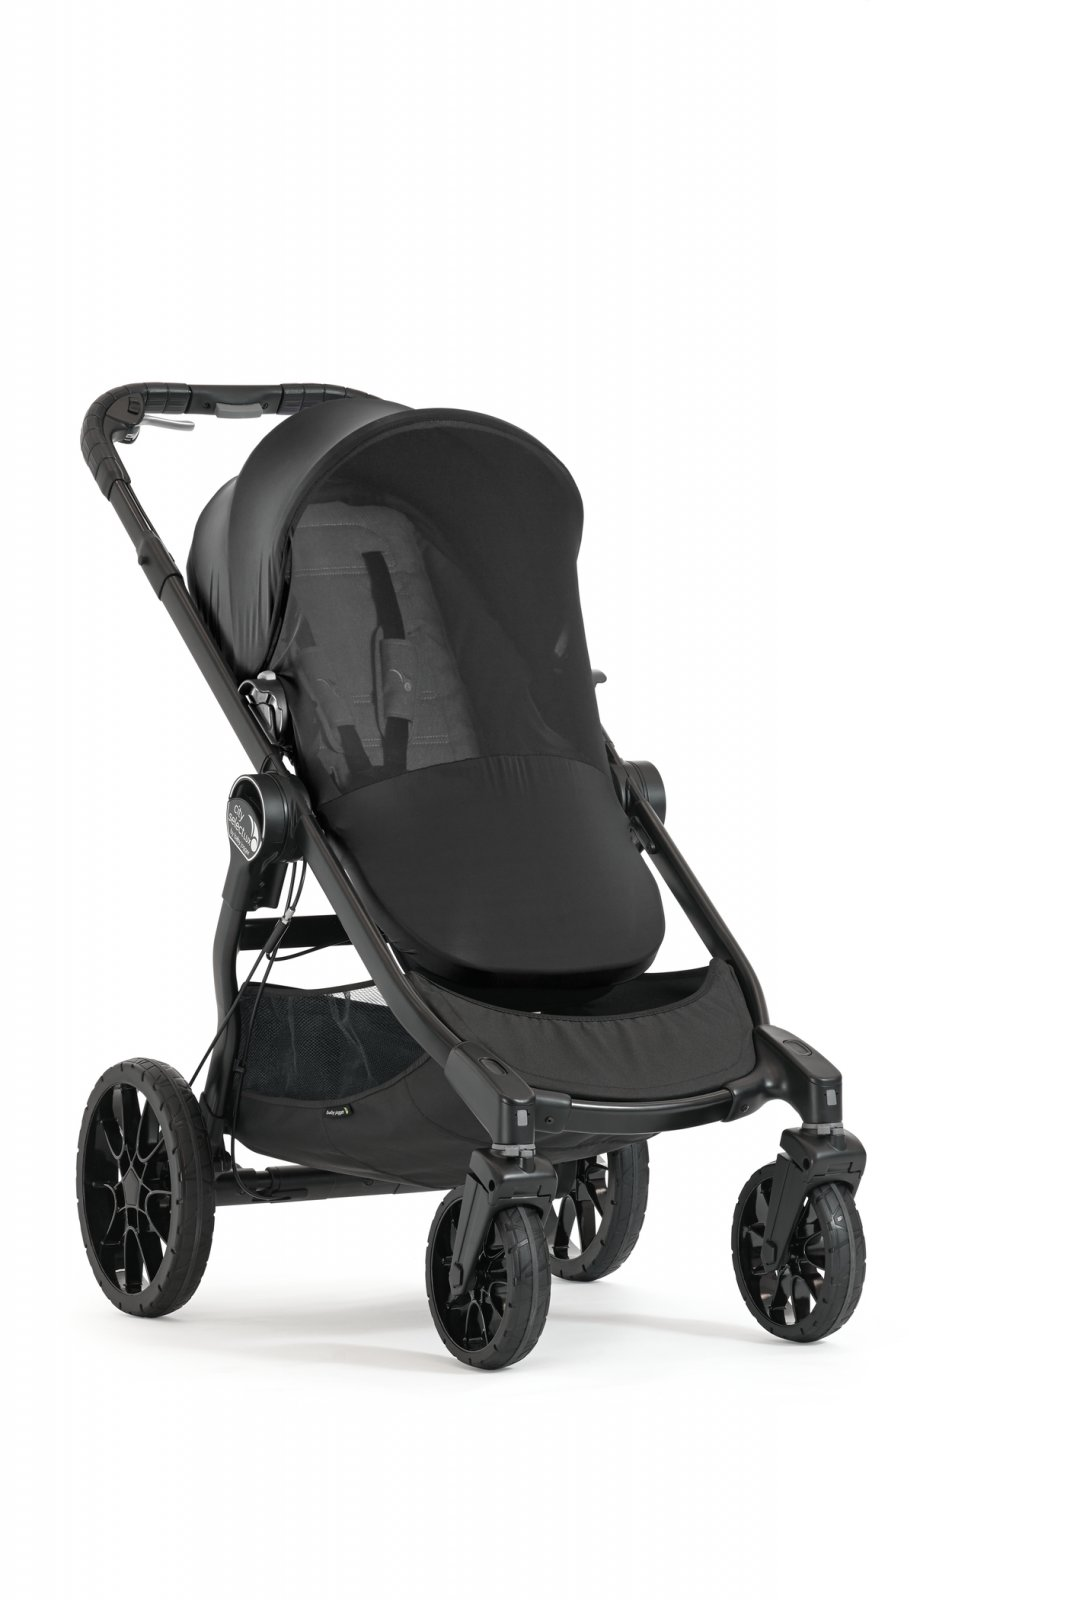 Baby Jogger Bug Canopy - City Select/City Select LUX